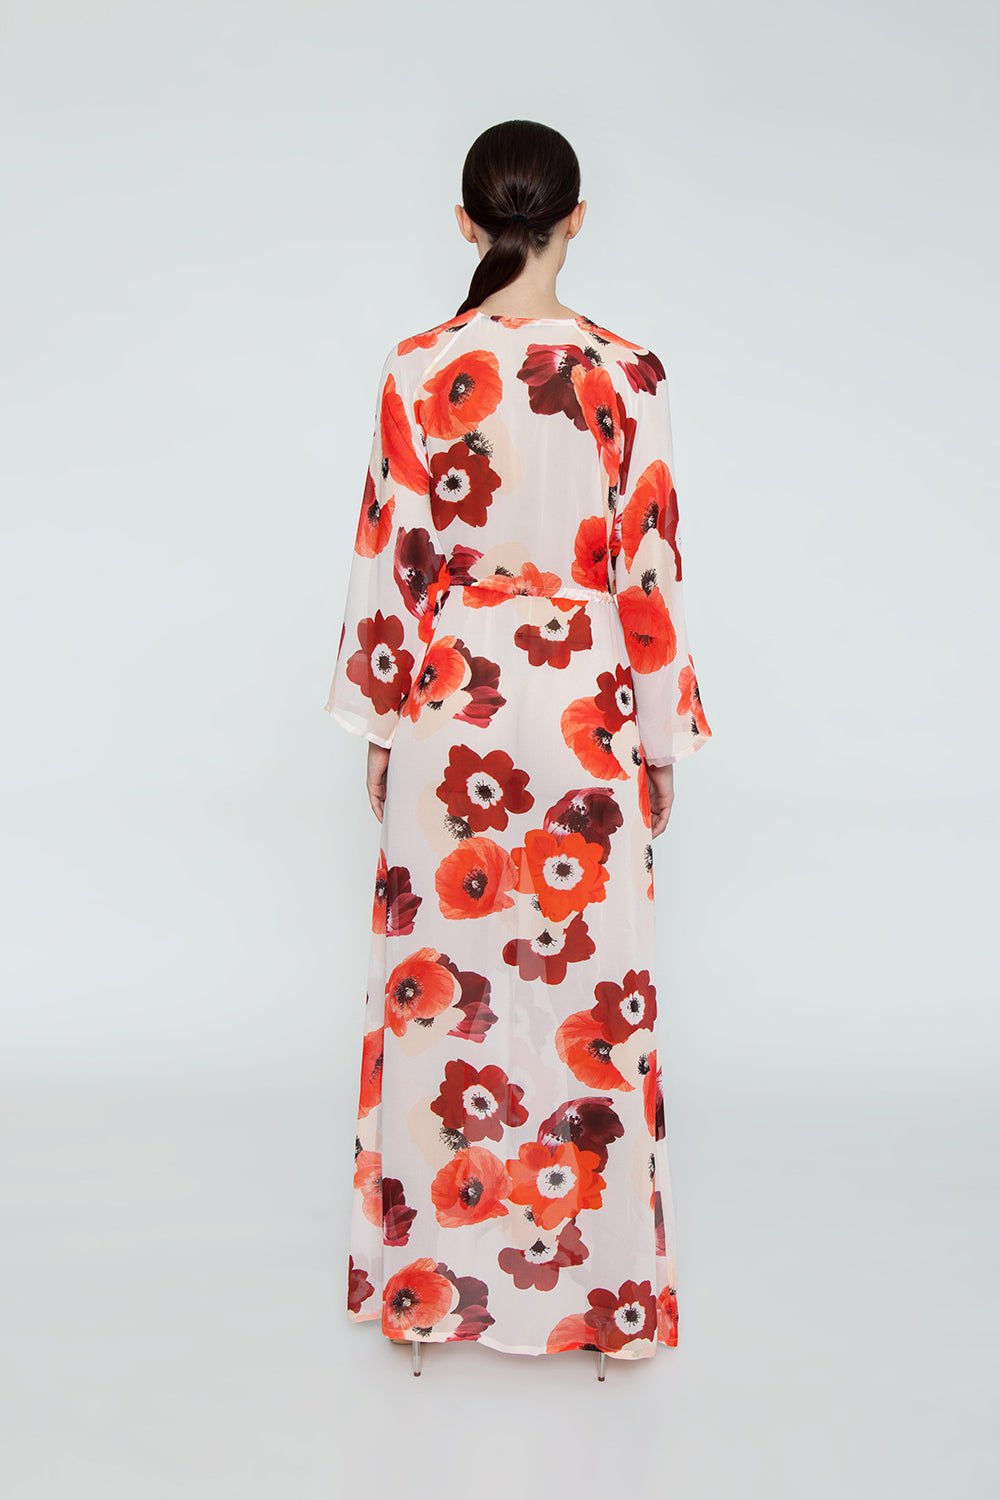 EVARAE Gela Open Kimono - Red Poppy Print Dress | Red Poppy Print| Evarae Gela Open Kimono - Red Poppy Print. Features:  100% Silk Georgette Slightly sheer Can be worn open or pulled in by adjustable cords at the waist Back View